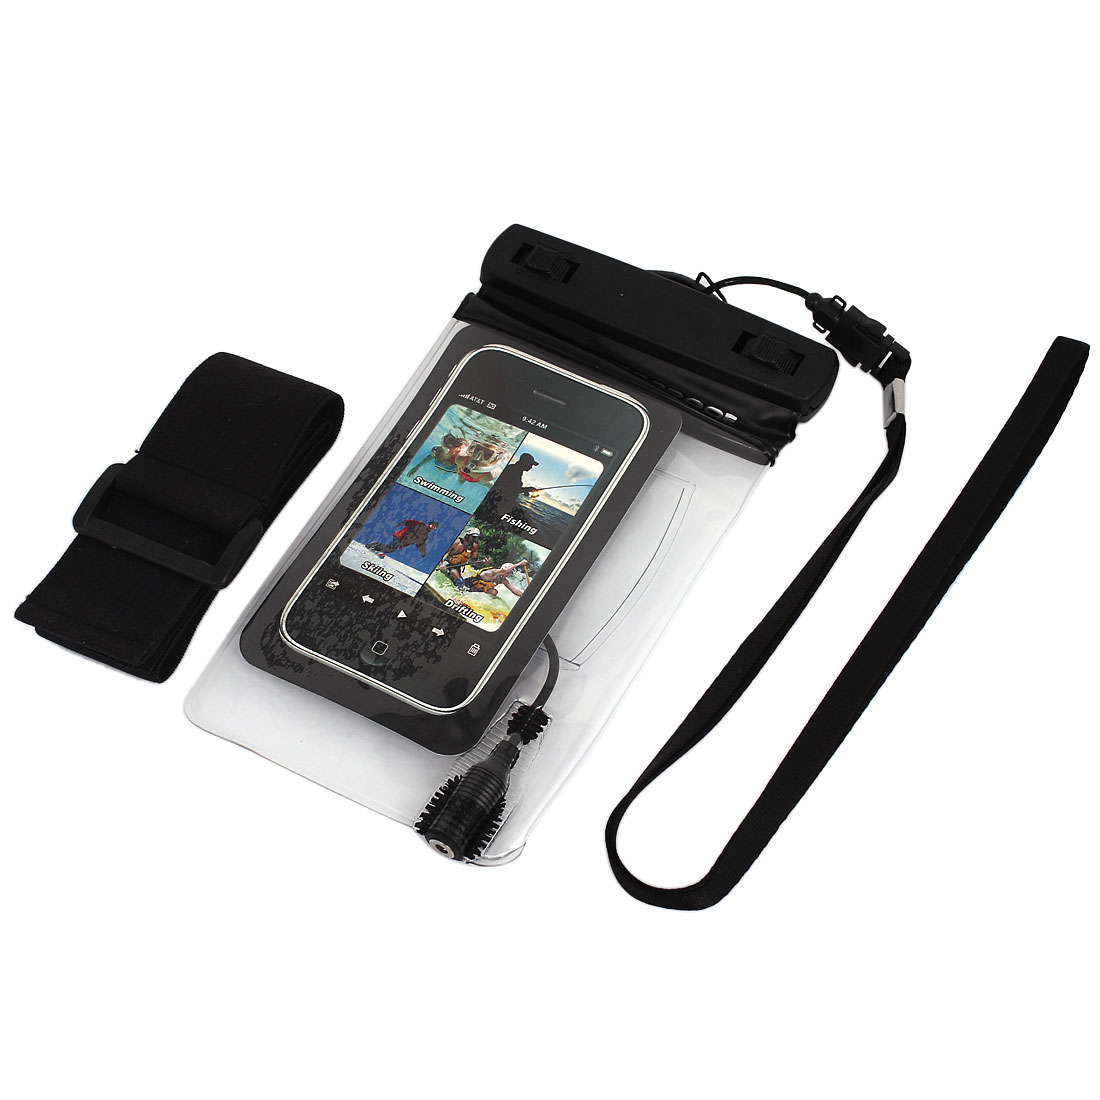 Waterproof Bag Case Holder Protector Black for iPone 4G w Earphone Armband